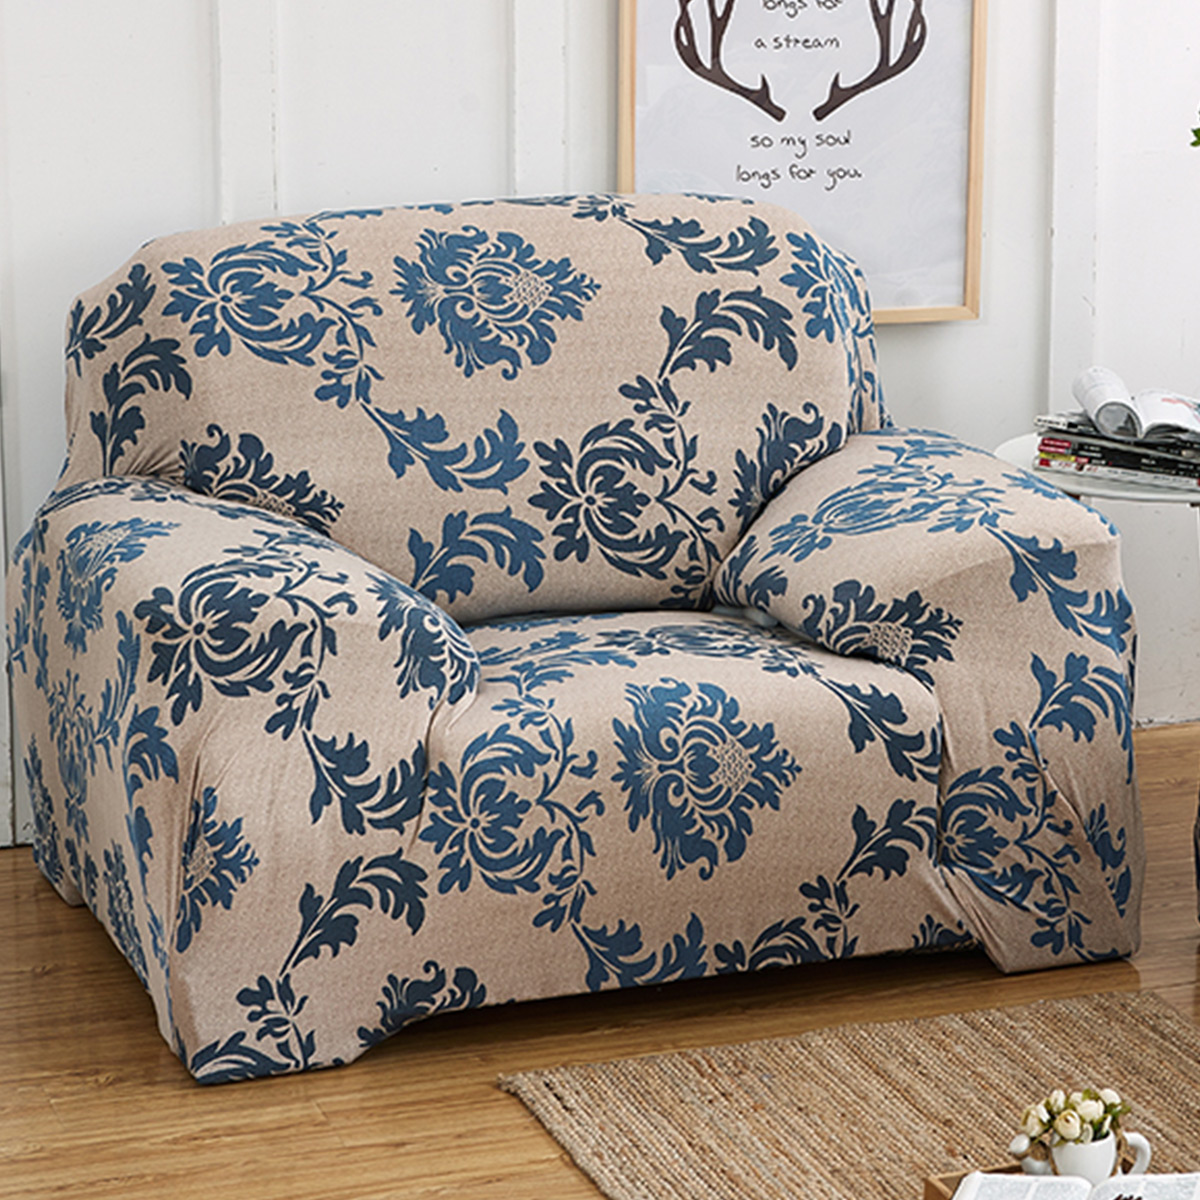 Stretch Fabric One Seater L Shape, TKOOFN Elastic Sofa Cover Couch Furniture Slipcover Protector